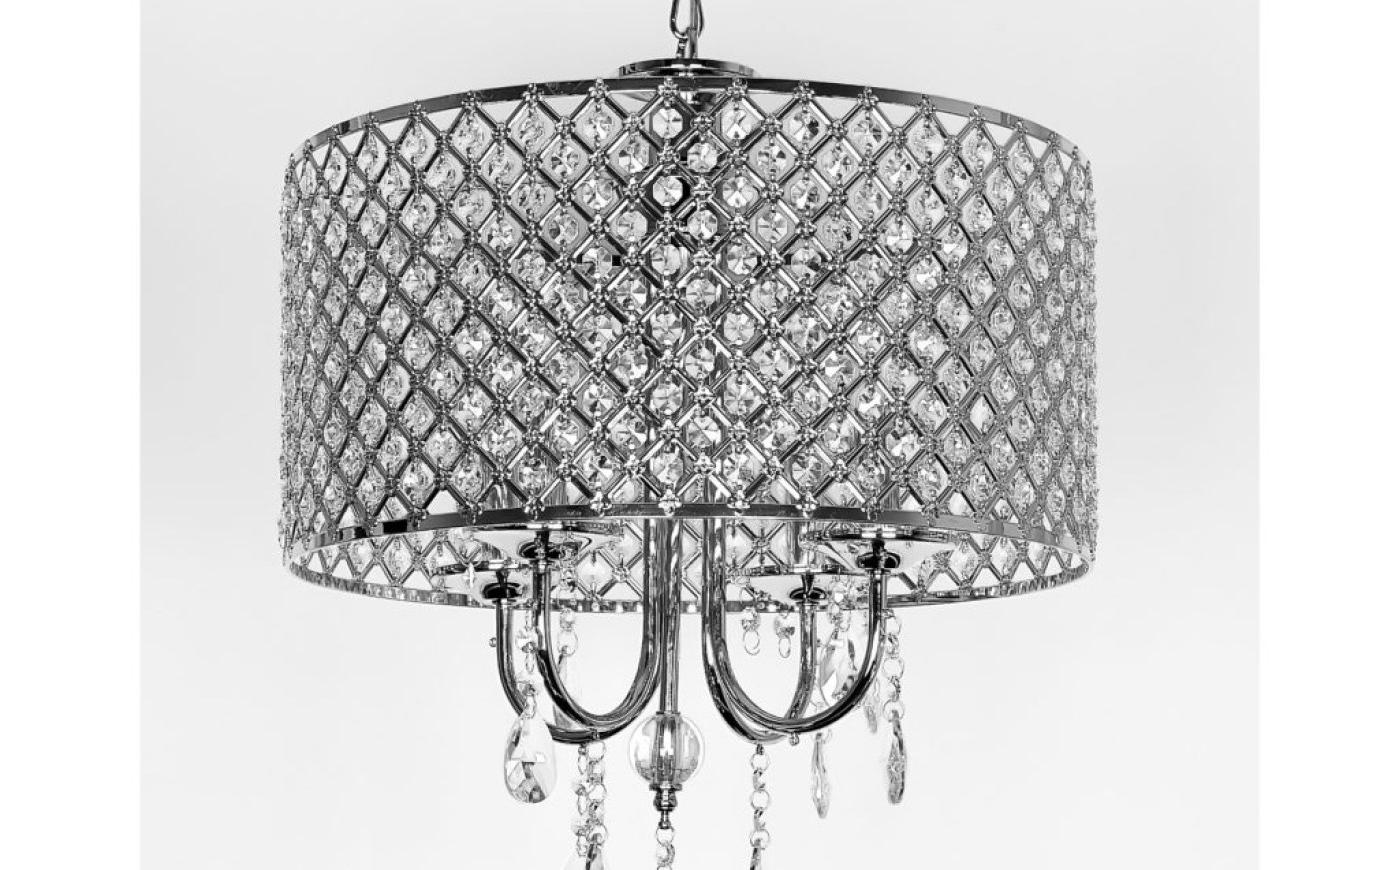 Current Chandeliers Design : Amazing Black Chandelier Ceiling Fan With Regarding Chandelier Light Fixture For Ceiling Fan (View 13 of 15)